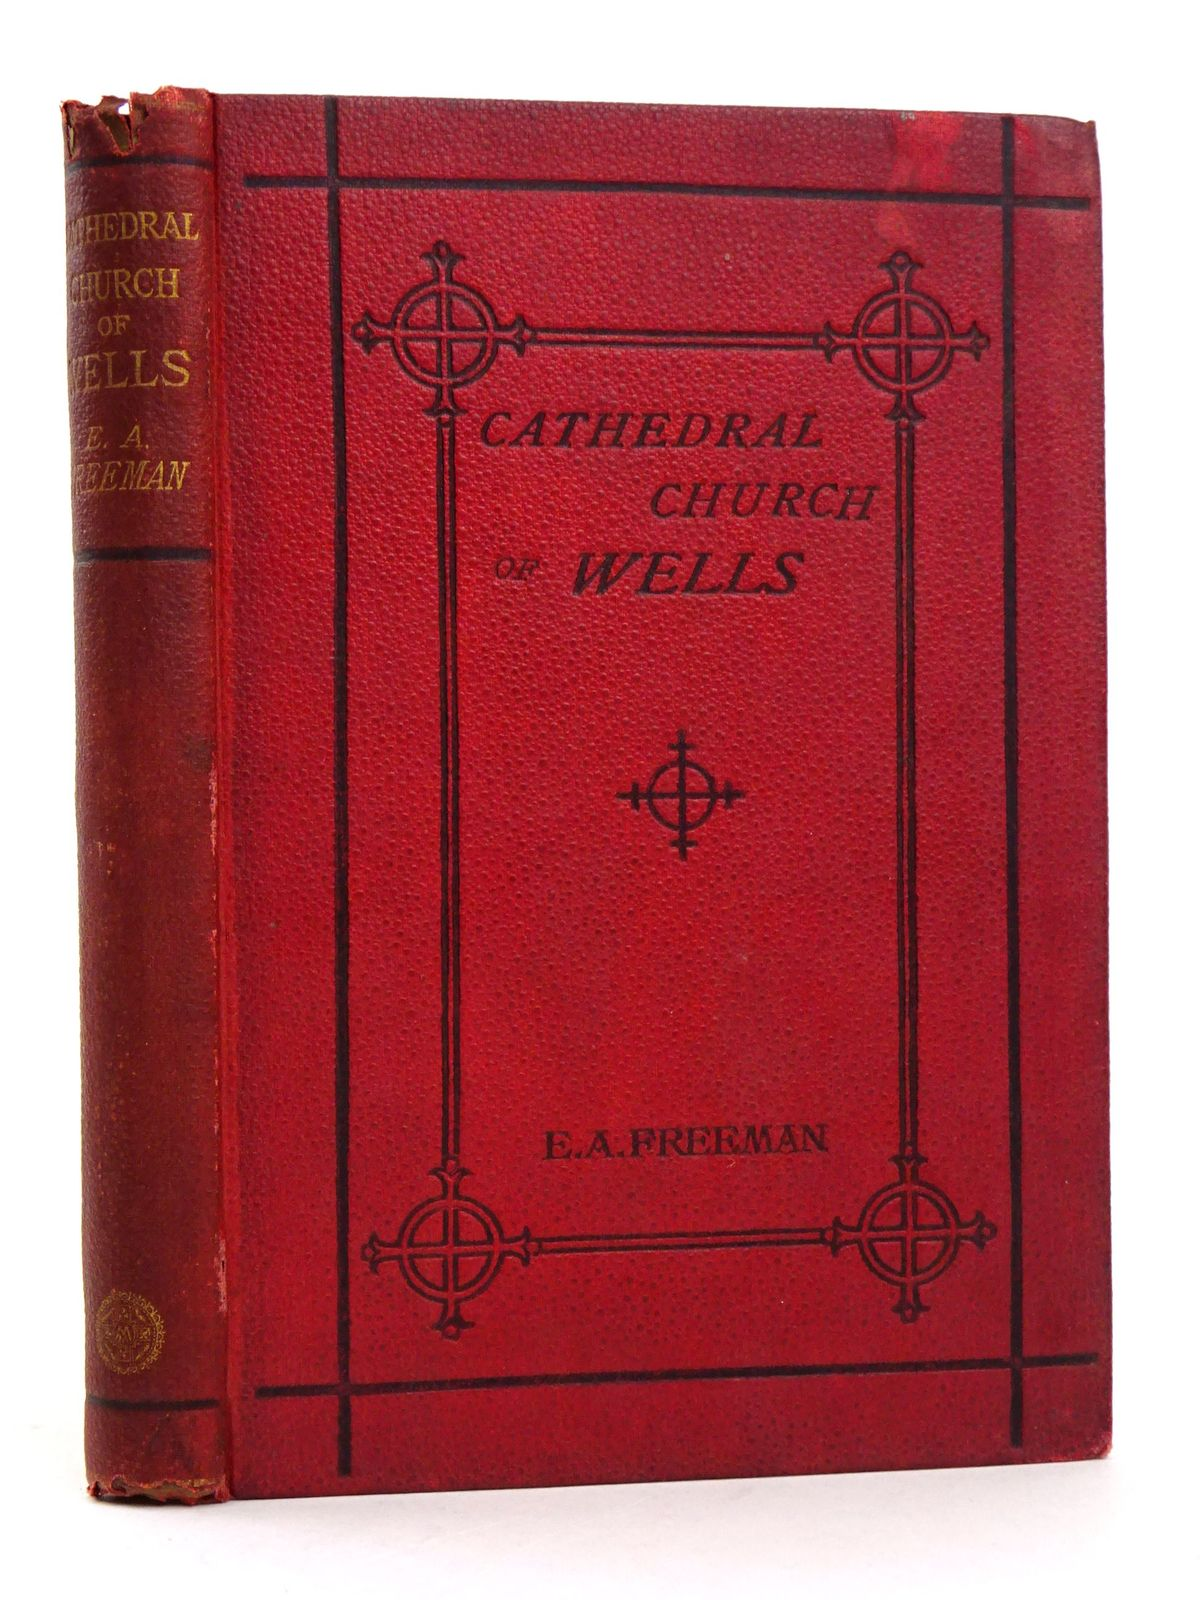 Photo of HISTORY OF THE CATHEDRAL CHURCH OF WELLS written by Freeman, Edward A. published by Macmillan & Co. (STOCK CODE: 1818353)  for sale by Stella & Rose's Books